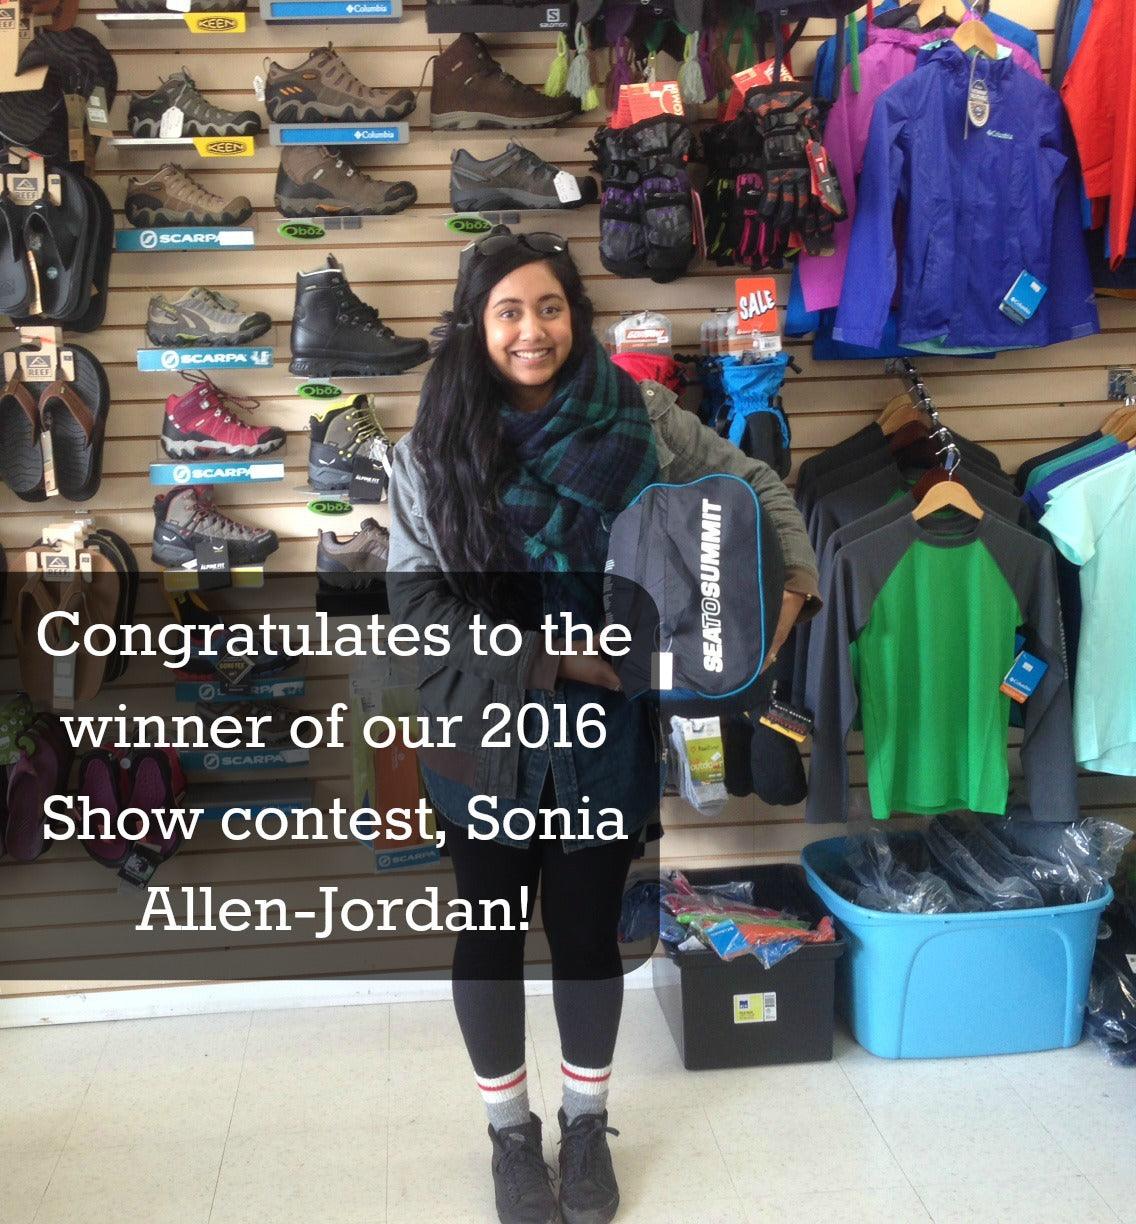 Congratulates to the winner of our 2016 show contest, Sonia Allen-Jordan!